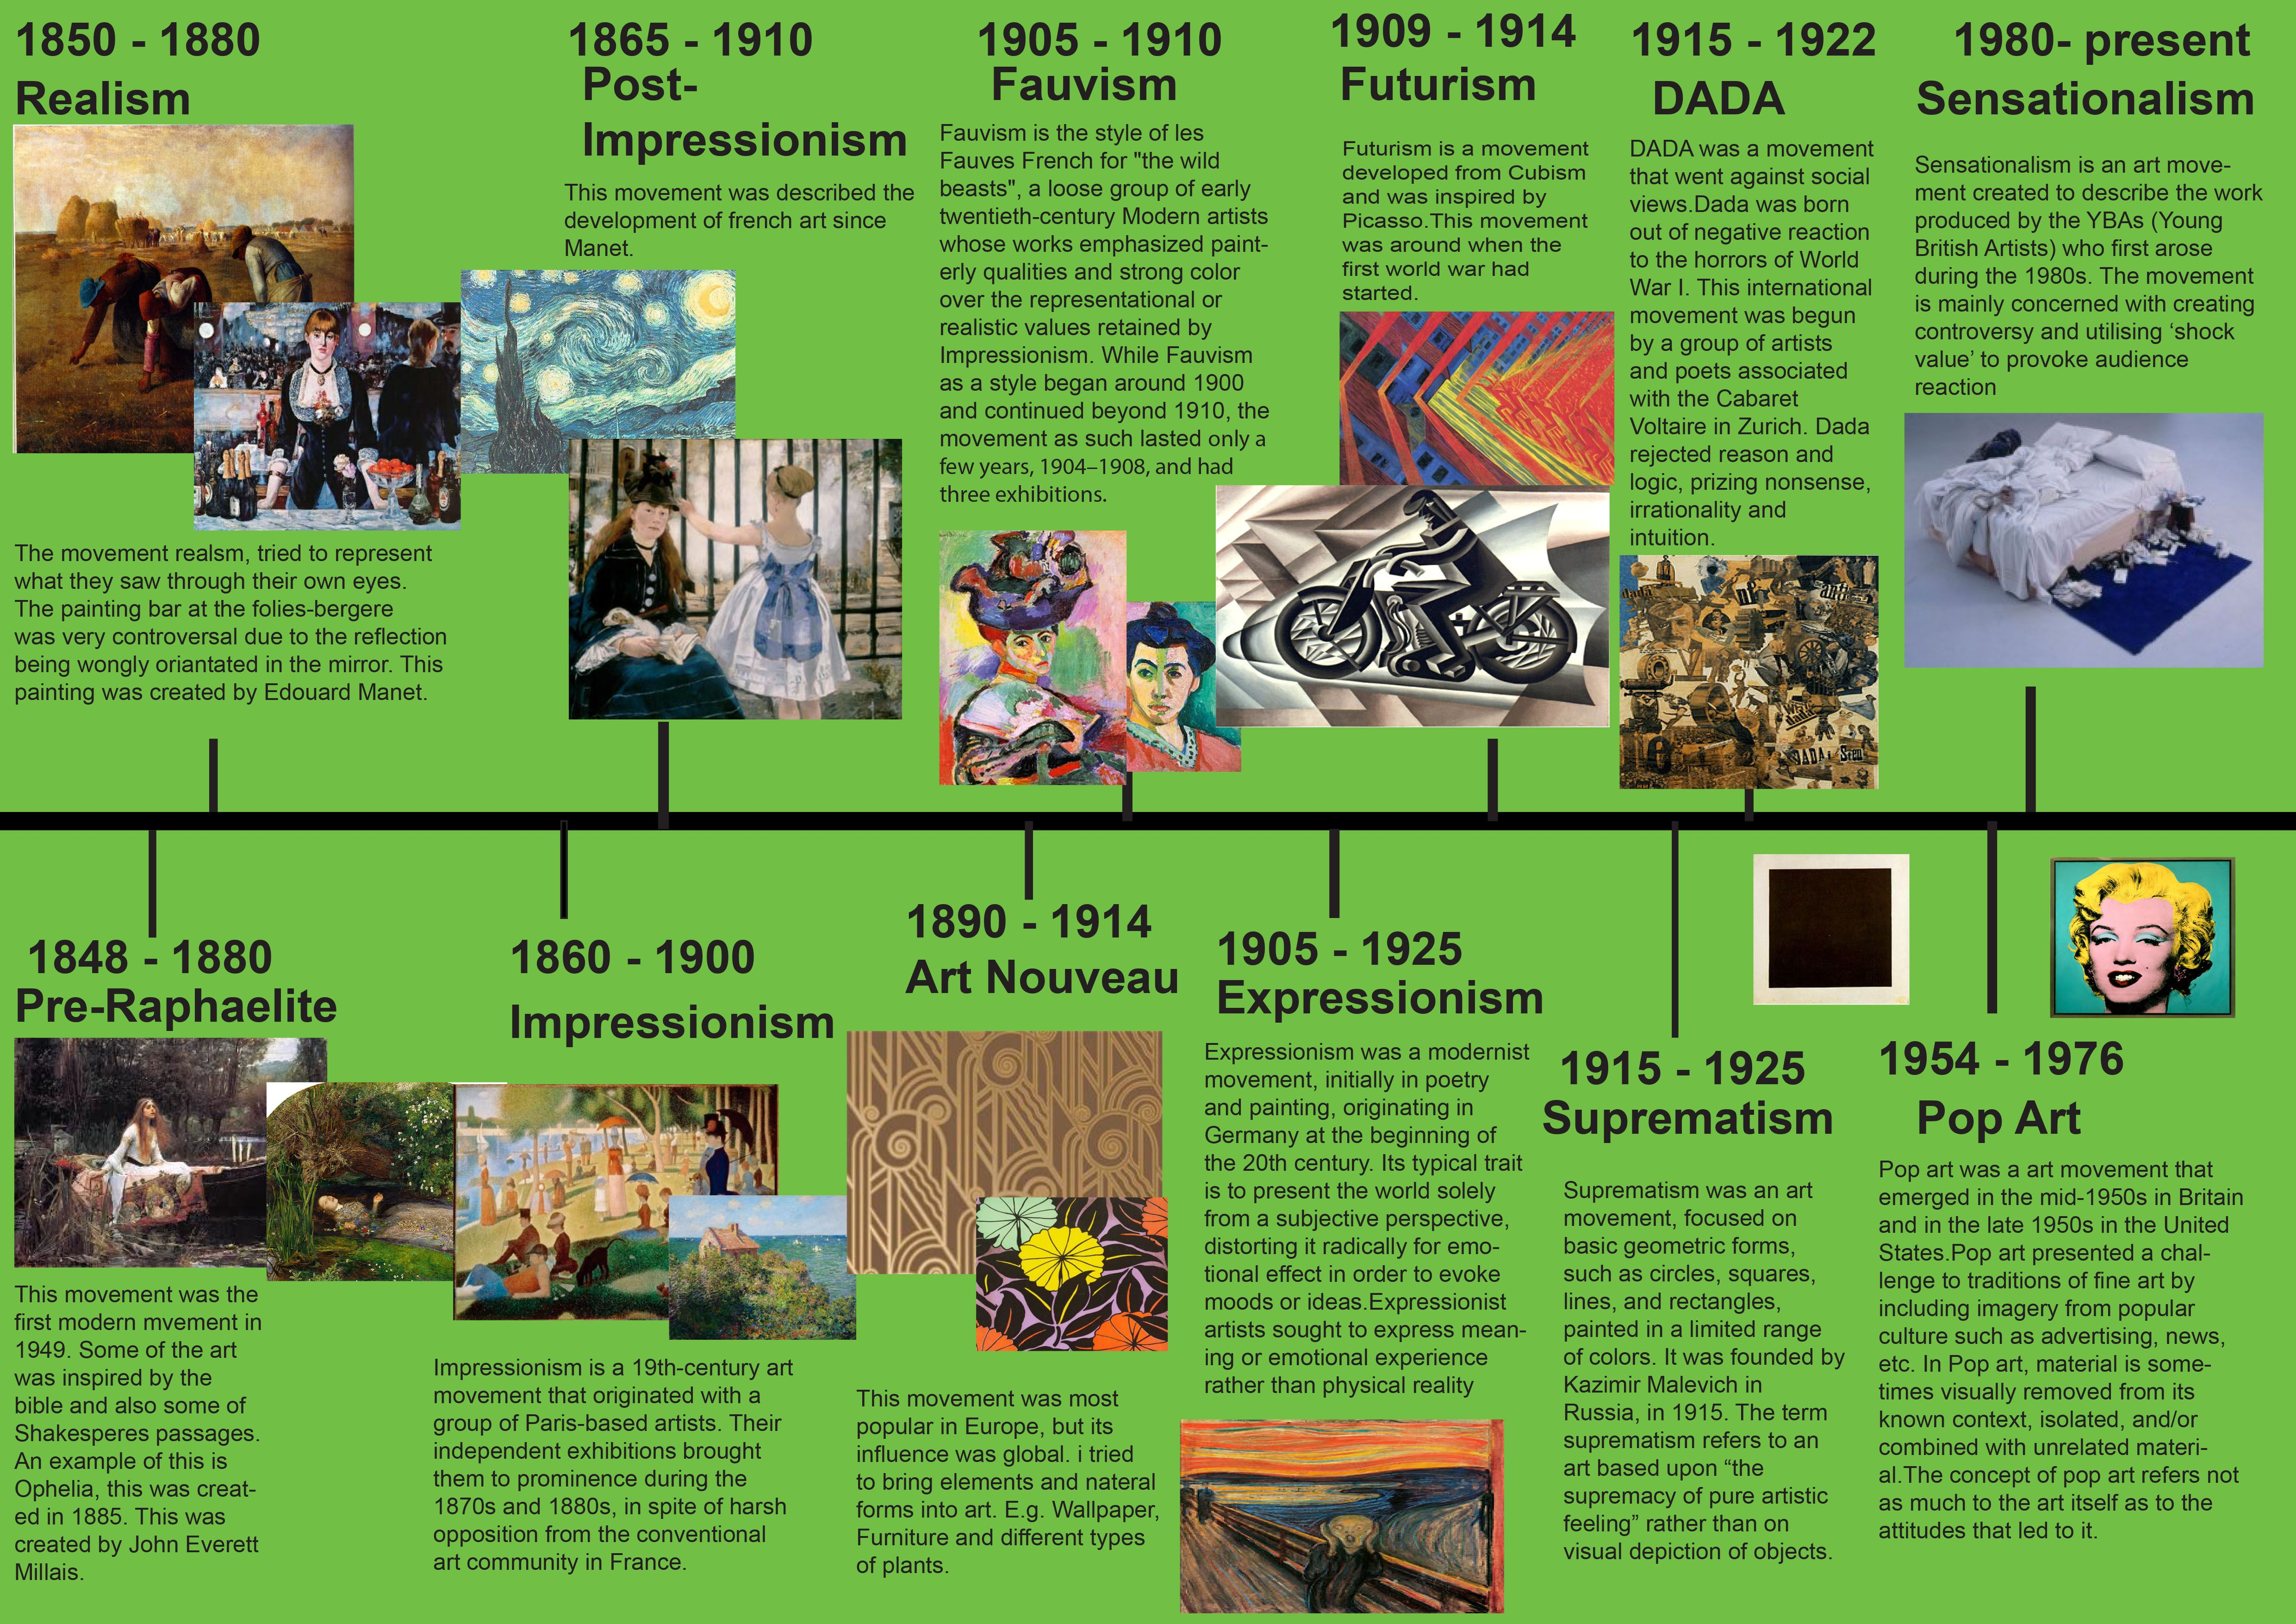 This Timeline Shows The Changes Through Historical Art Movements